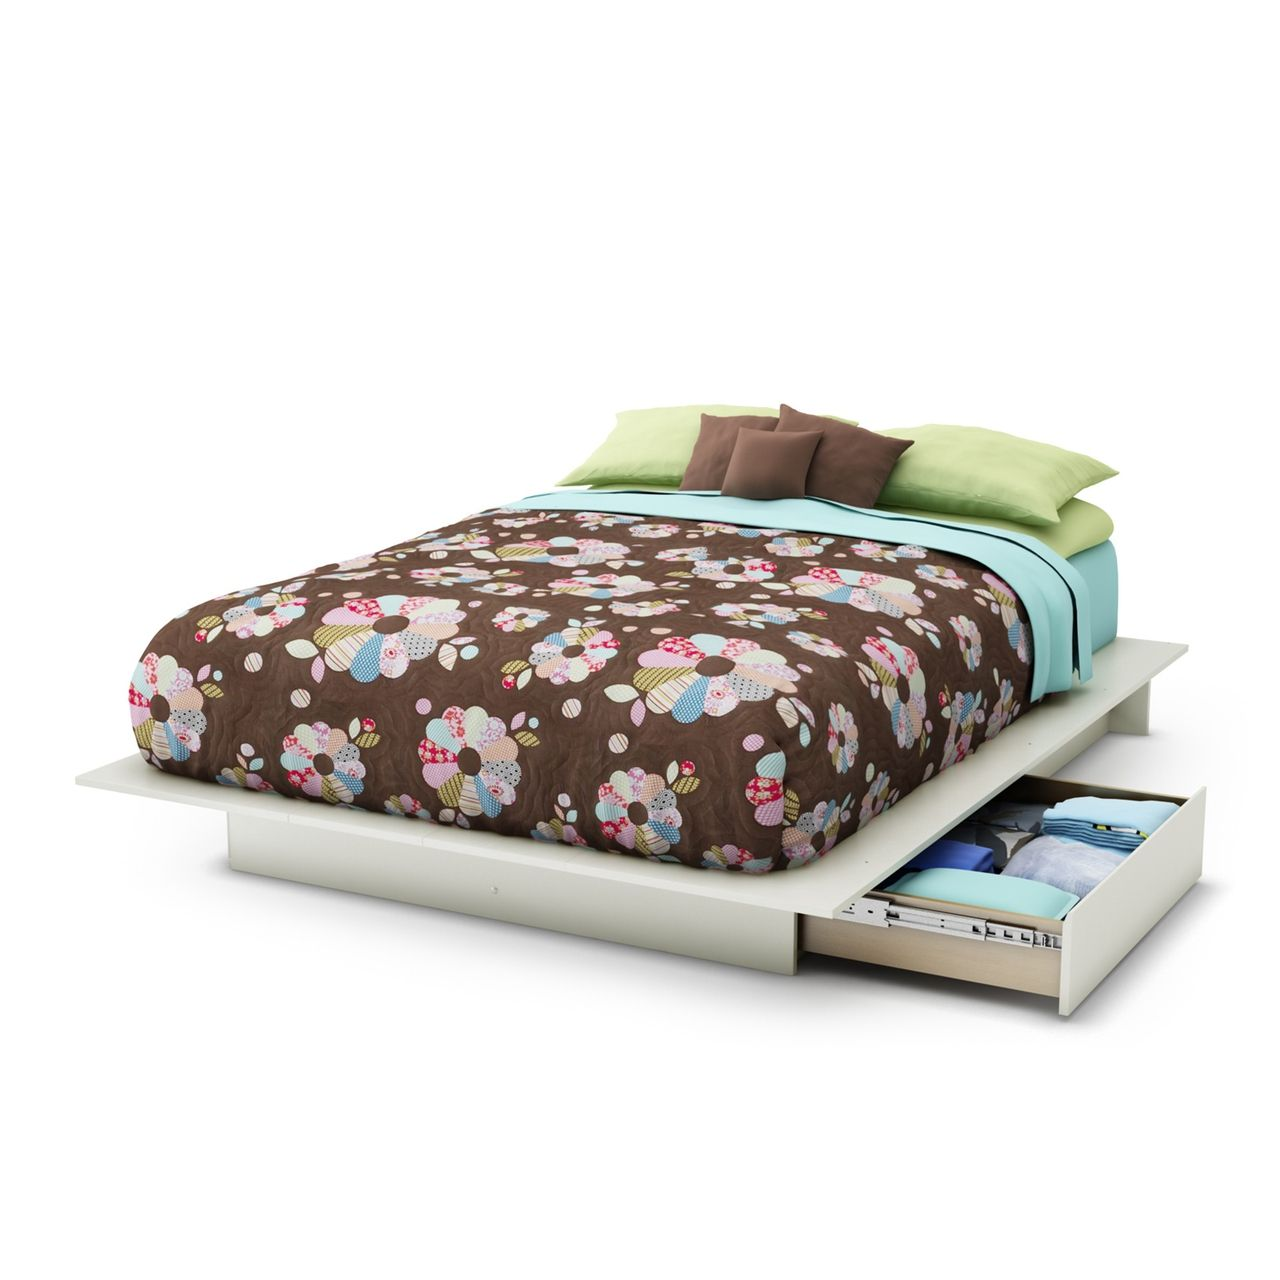 Queen size Modern Platform Bed with 2 Storage Drawers in White Finish - Quality House